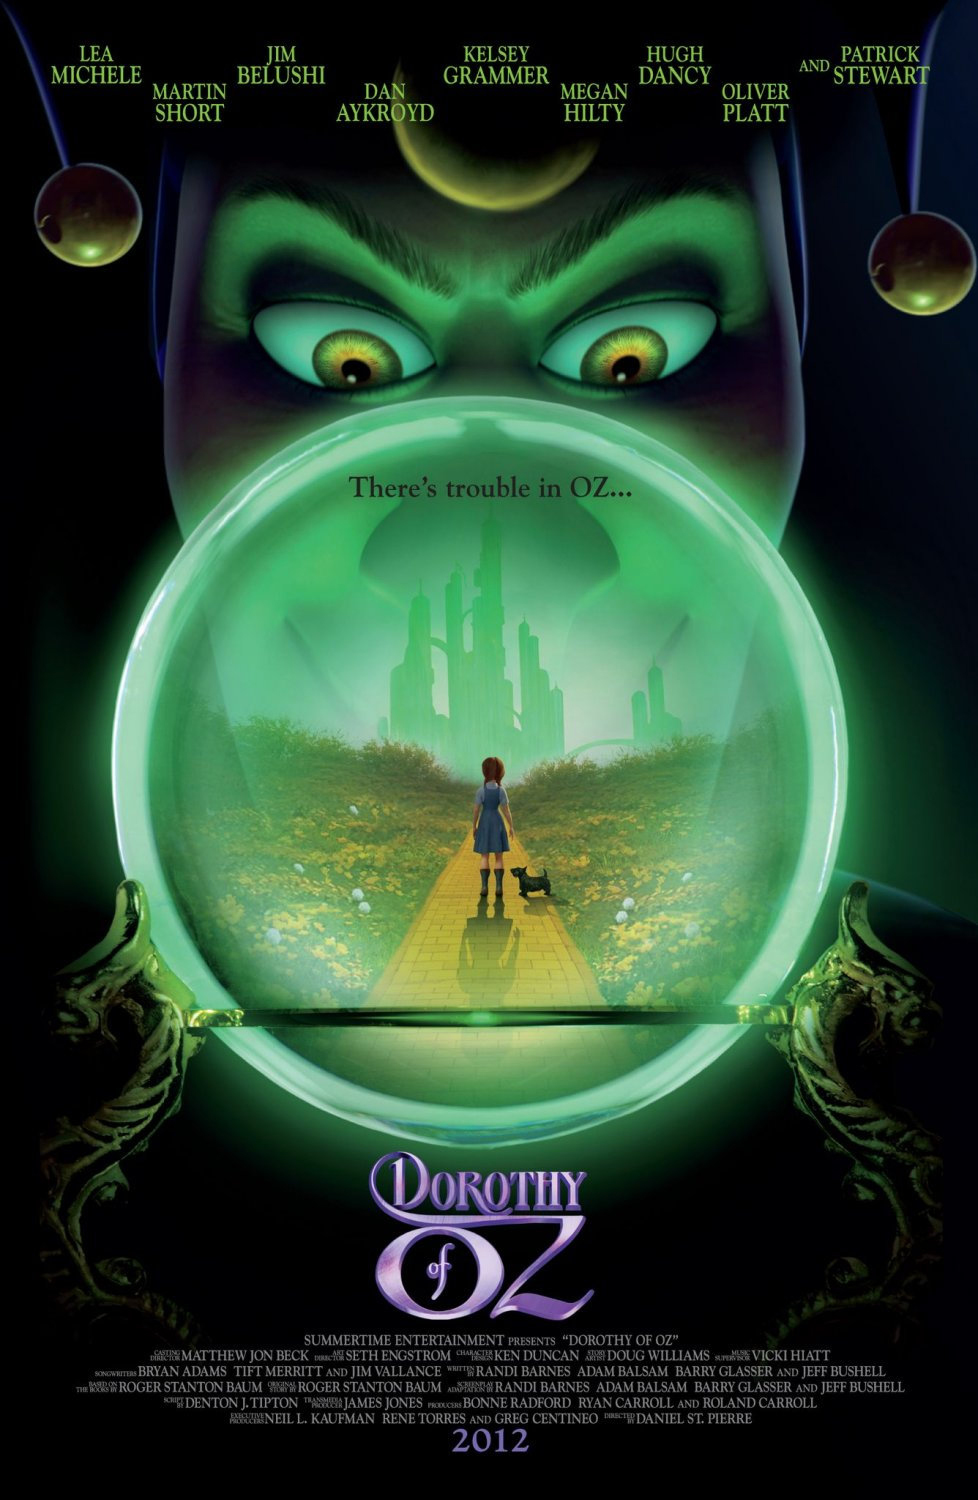 trailer-for-the-cg-animated-film-legends-of-oz-dorothys-return.jpg